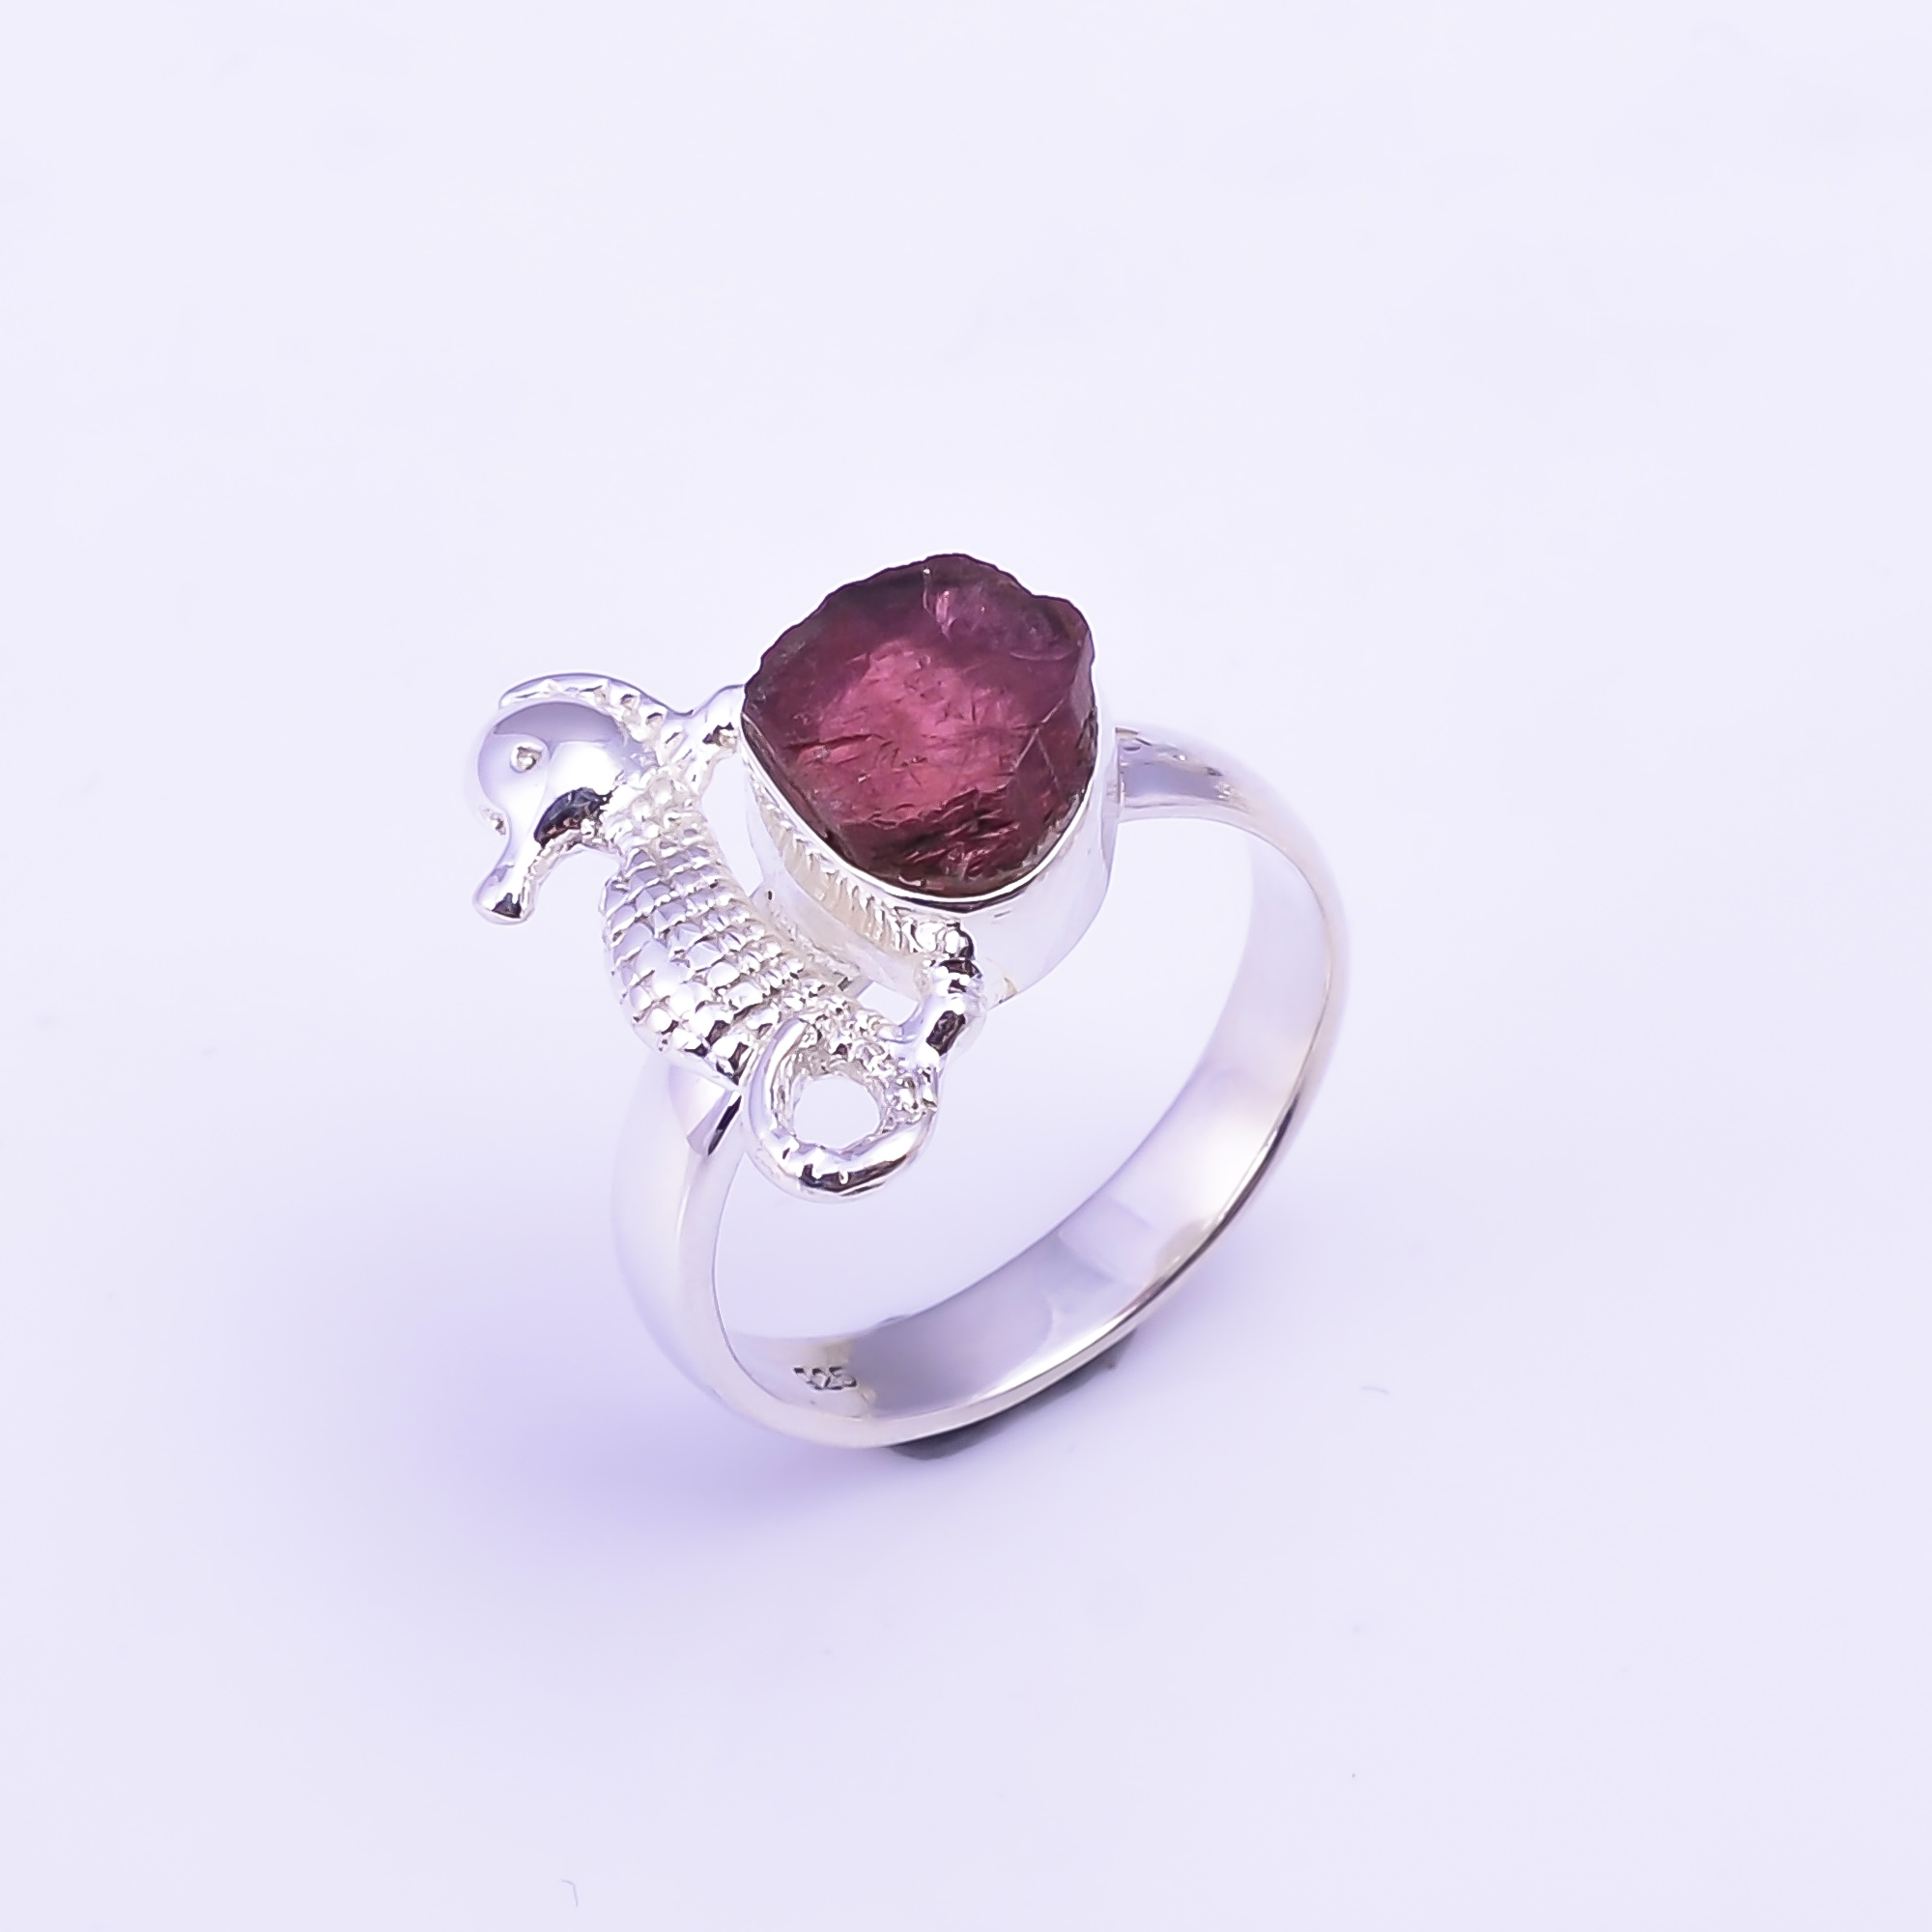 Raw Pink Tourmaline Gemstone 925 Sterling Silver Ring Size US 7